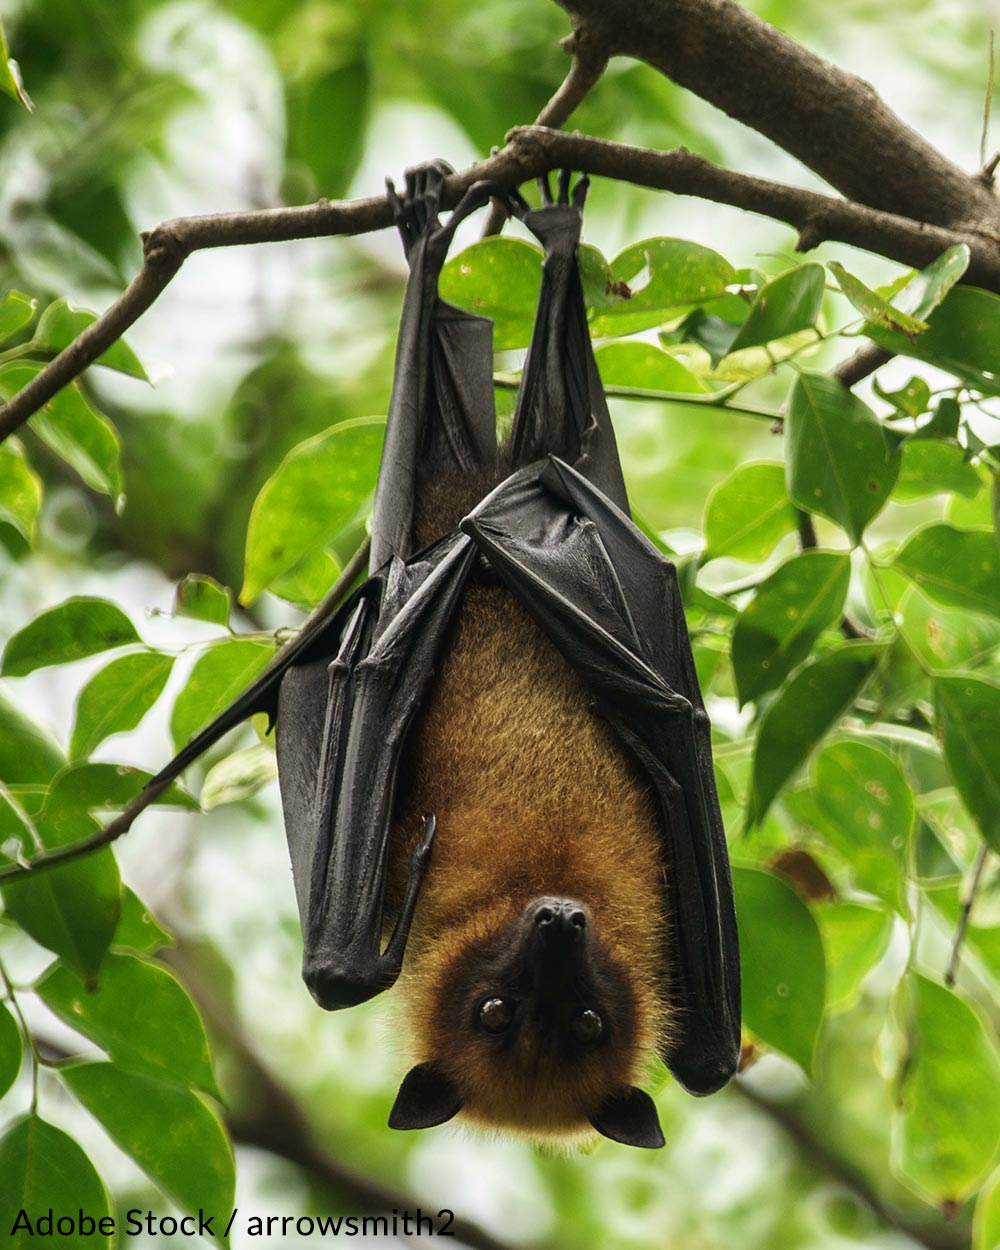 Help us save the bats of North America!